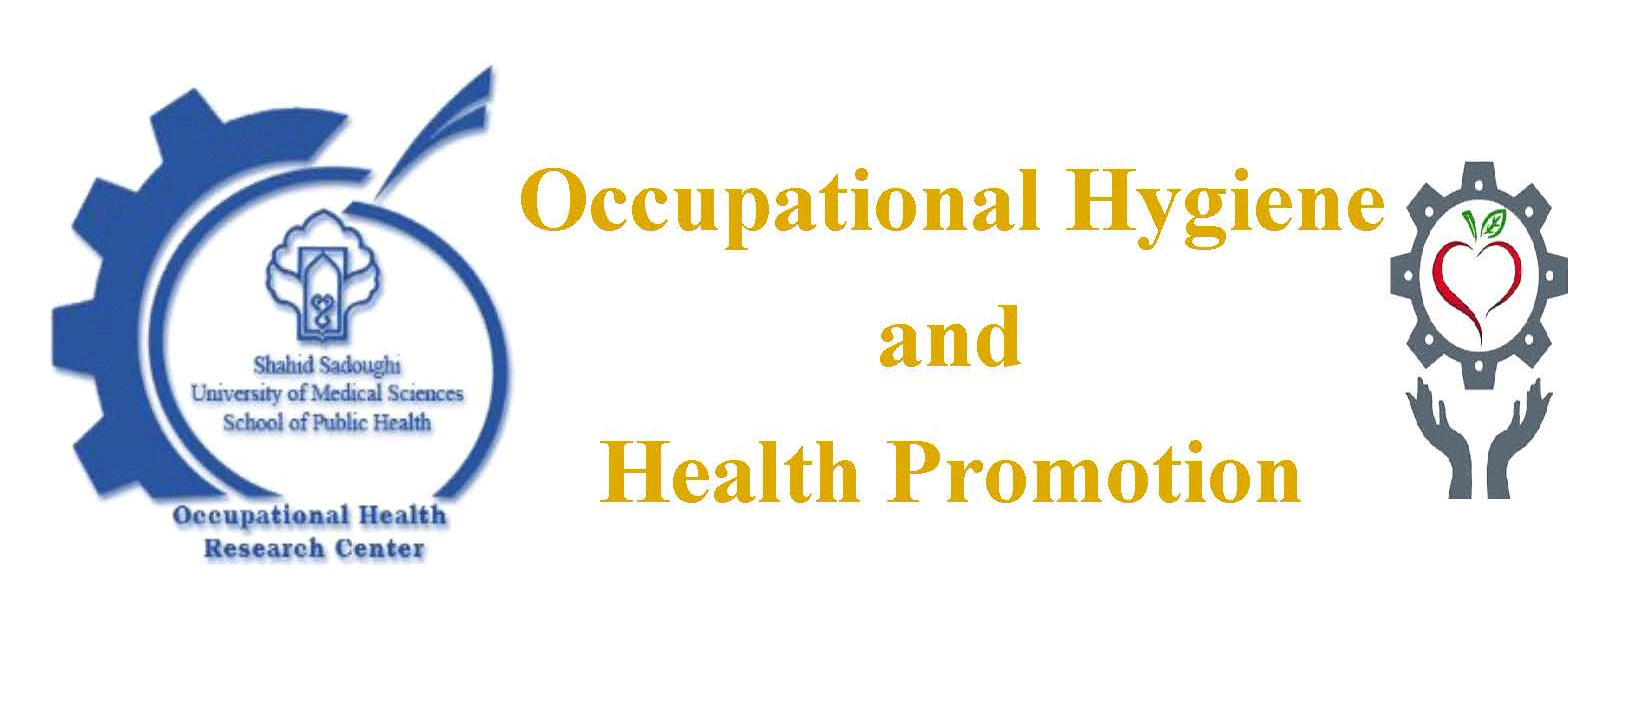 Occupational Hygiene and Health Promotion Journal